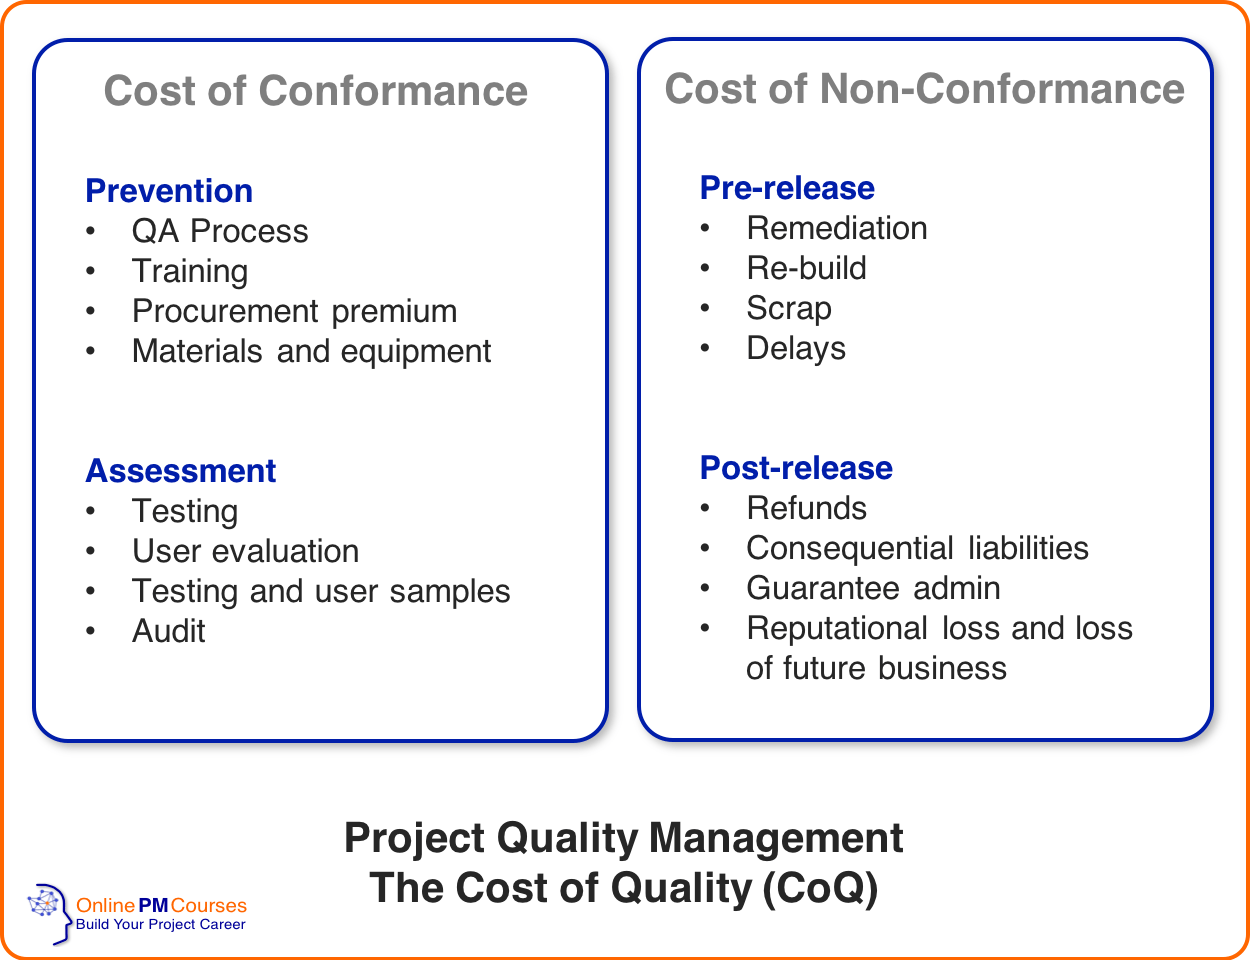 Project Quality Management - The Cost of Quality (CoQ)